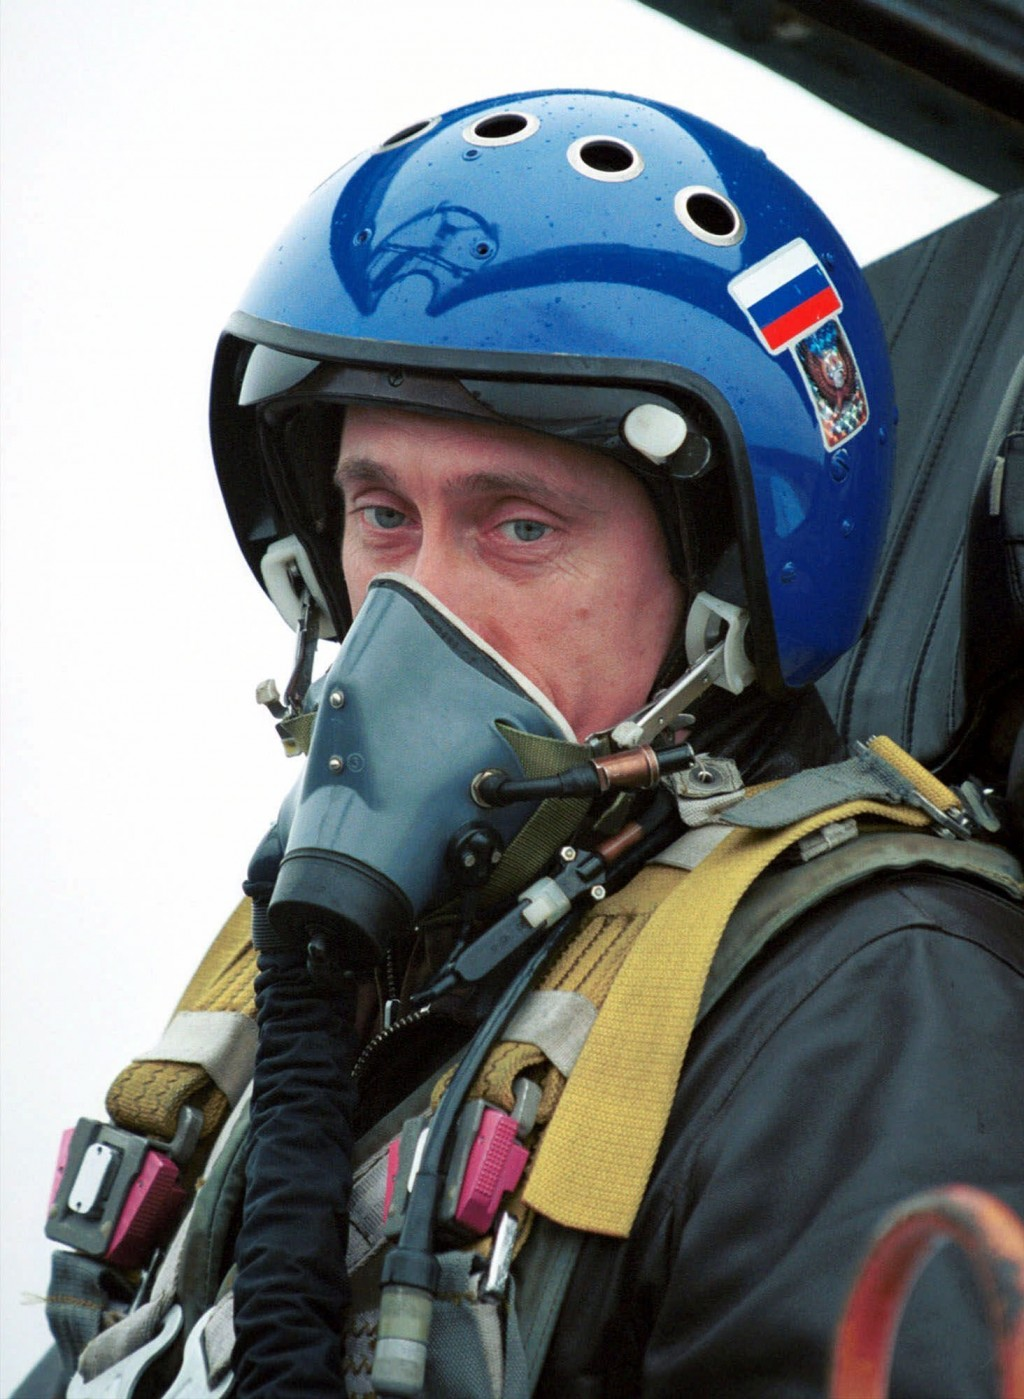 FILE - In this file photo taken on Monday, March 20, 2000, Russian President Vladimir Putin, wearing a blue helmet and an oxygen mask, sits in Su-27 f